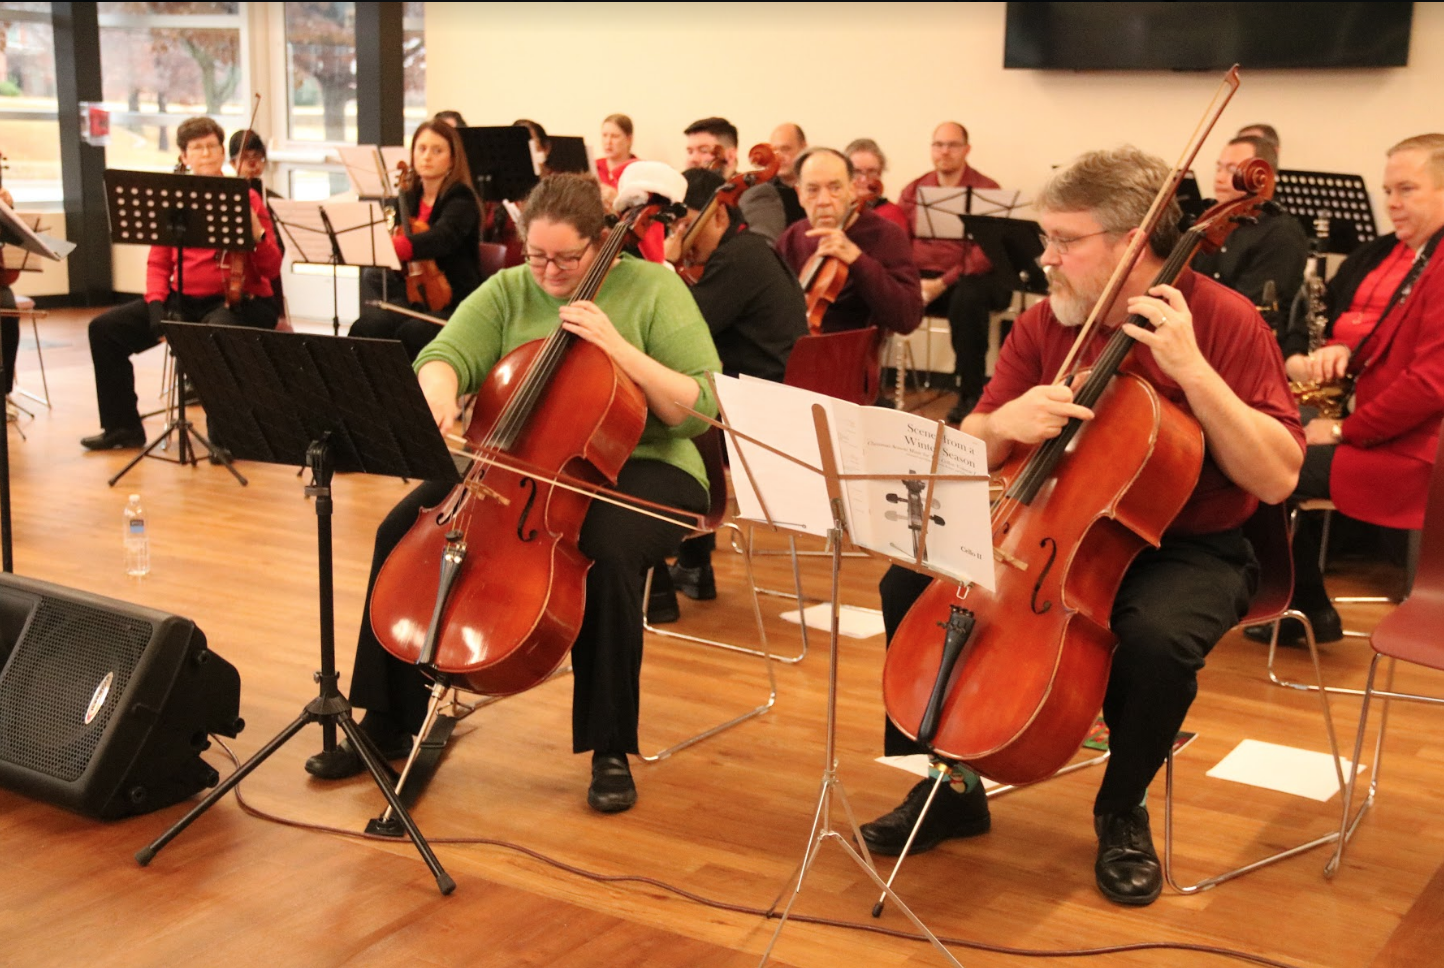 """The Coppell Orchestra performed at the Cozby Public Library on Saturday. President Tina Brown and another member of the group play """"In the Bleak Midwinter"""" by Holst."""